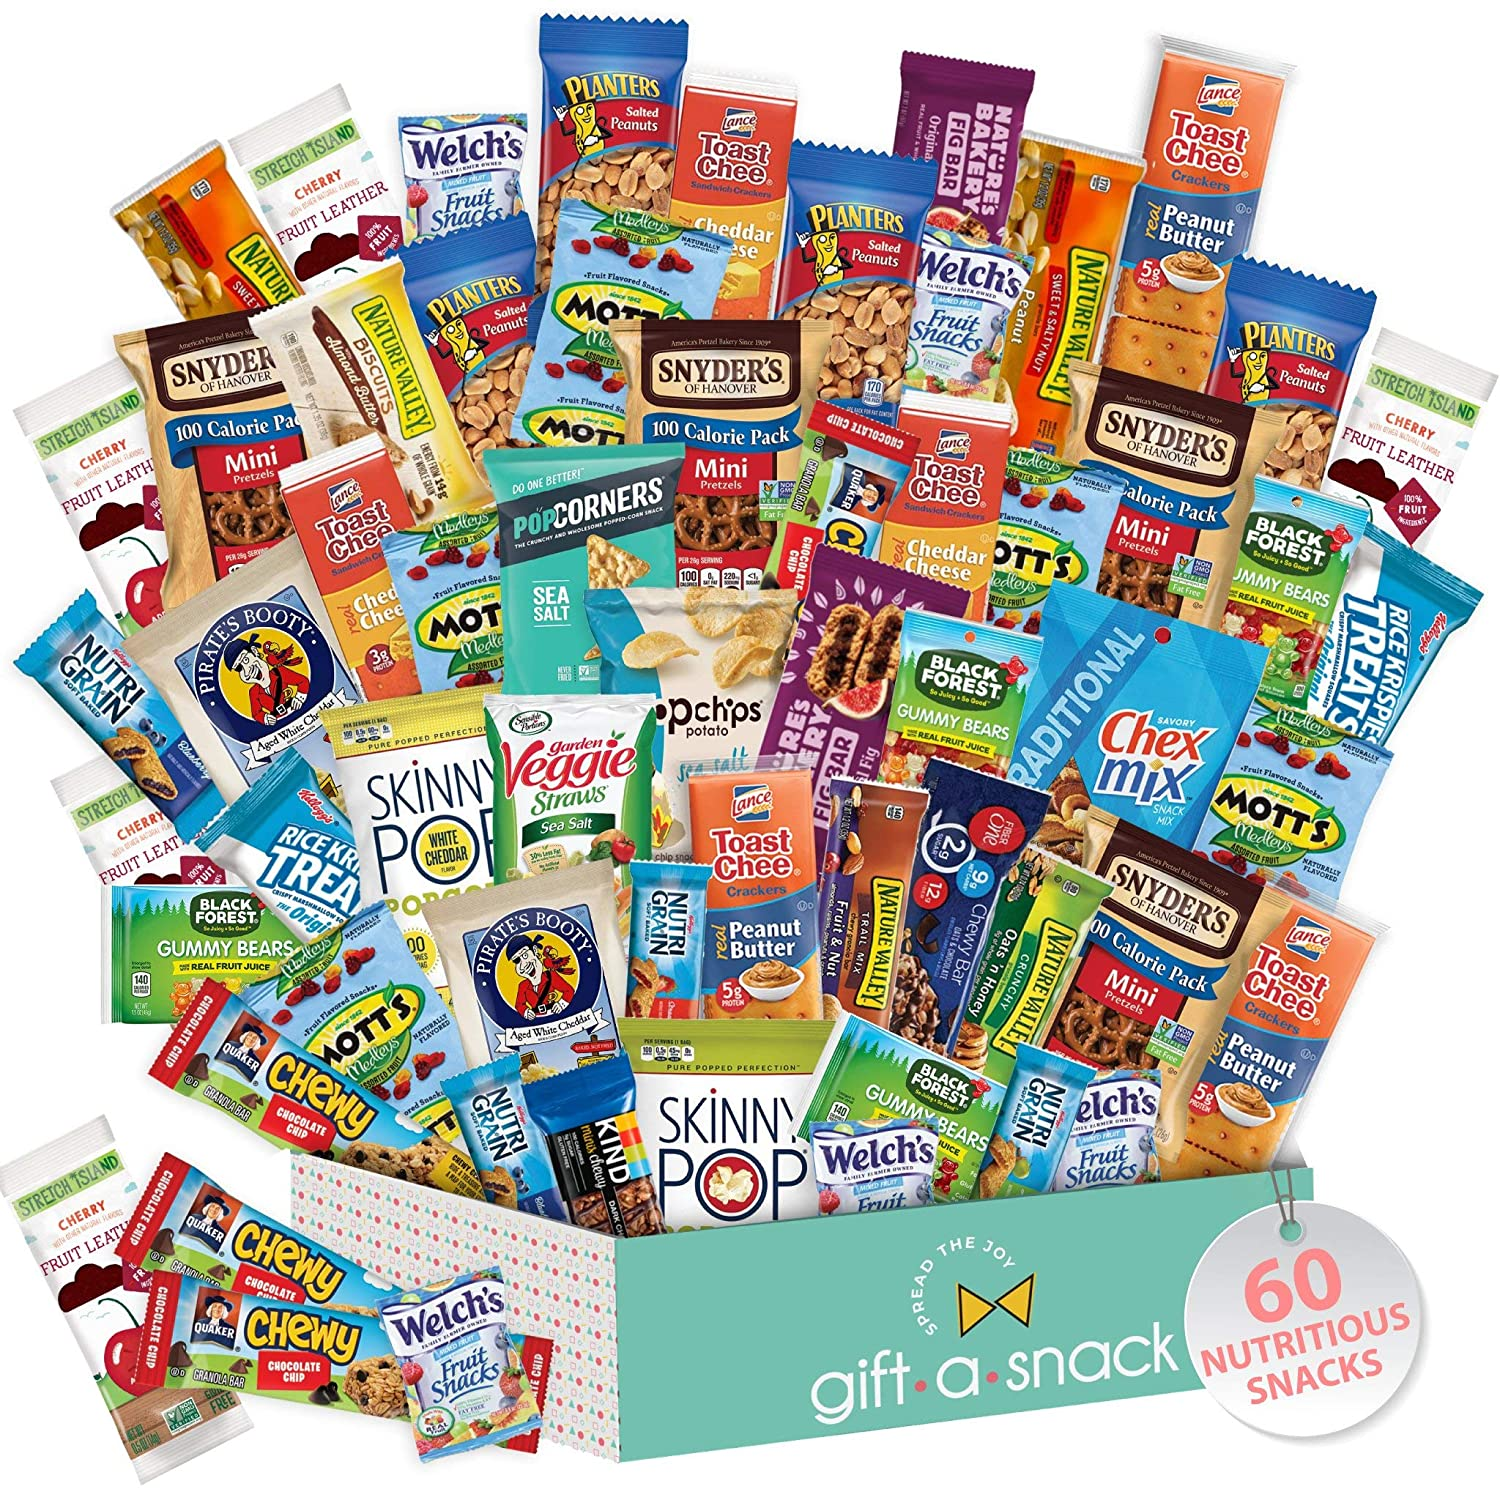 Healthy Snack Box Variety Pack (60 Count) Gift Basket - College Student Care Package, Natural Food Bars Nut Fruit, Nutritious Chips - Ultimate Birthday Treat for Women, Men, Adults, Teens, Kids